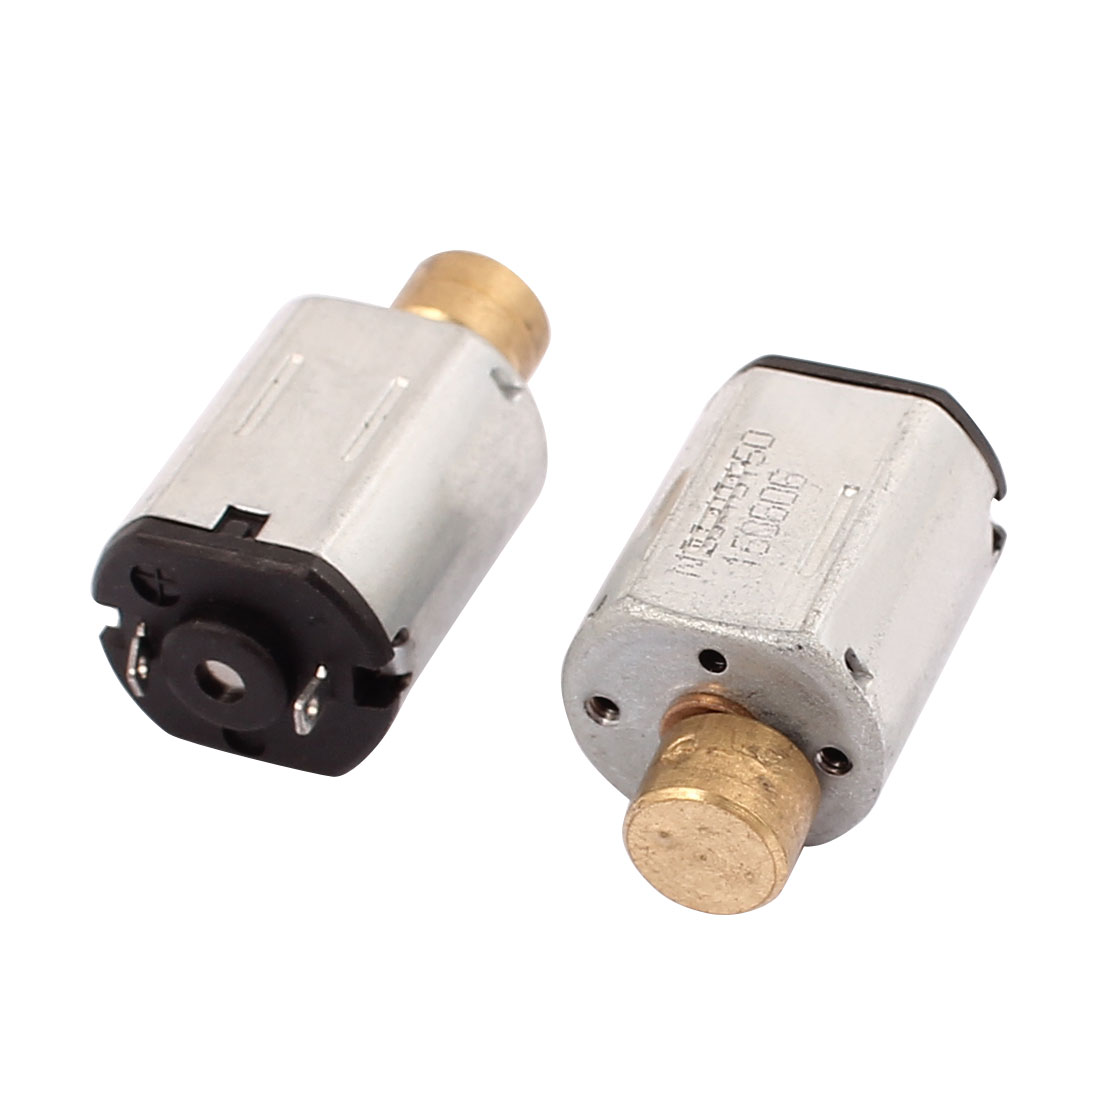 2Pcs DC 3.7V 10000RPM Large Torque Micro Vibration Motor for Electric Toy